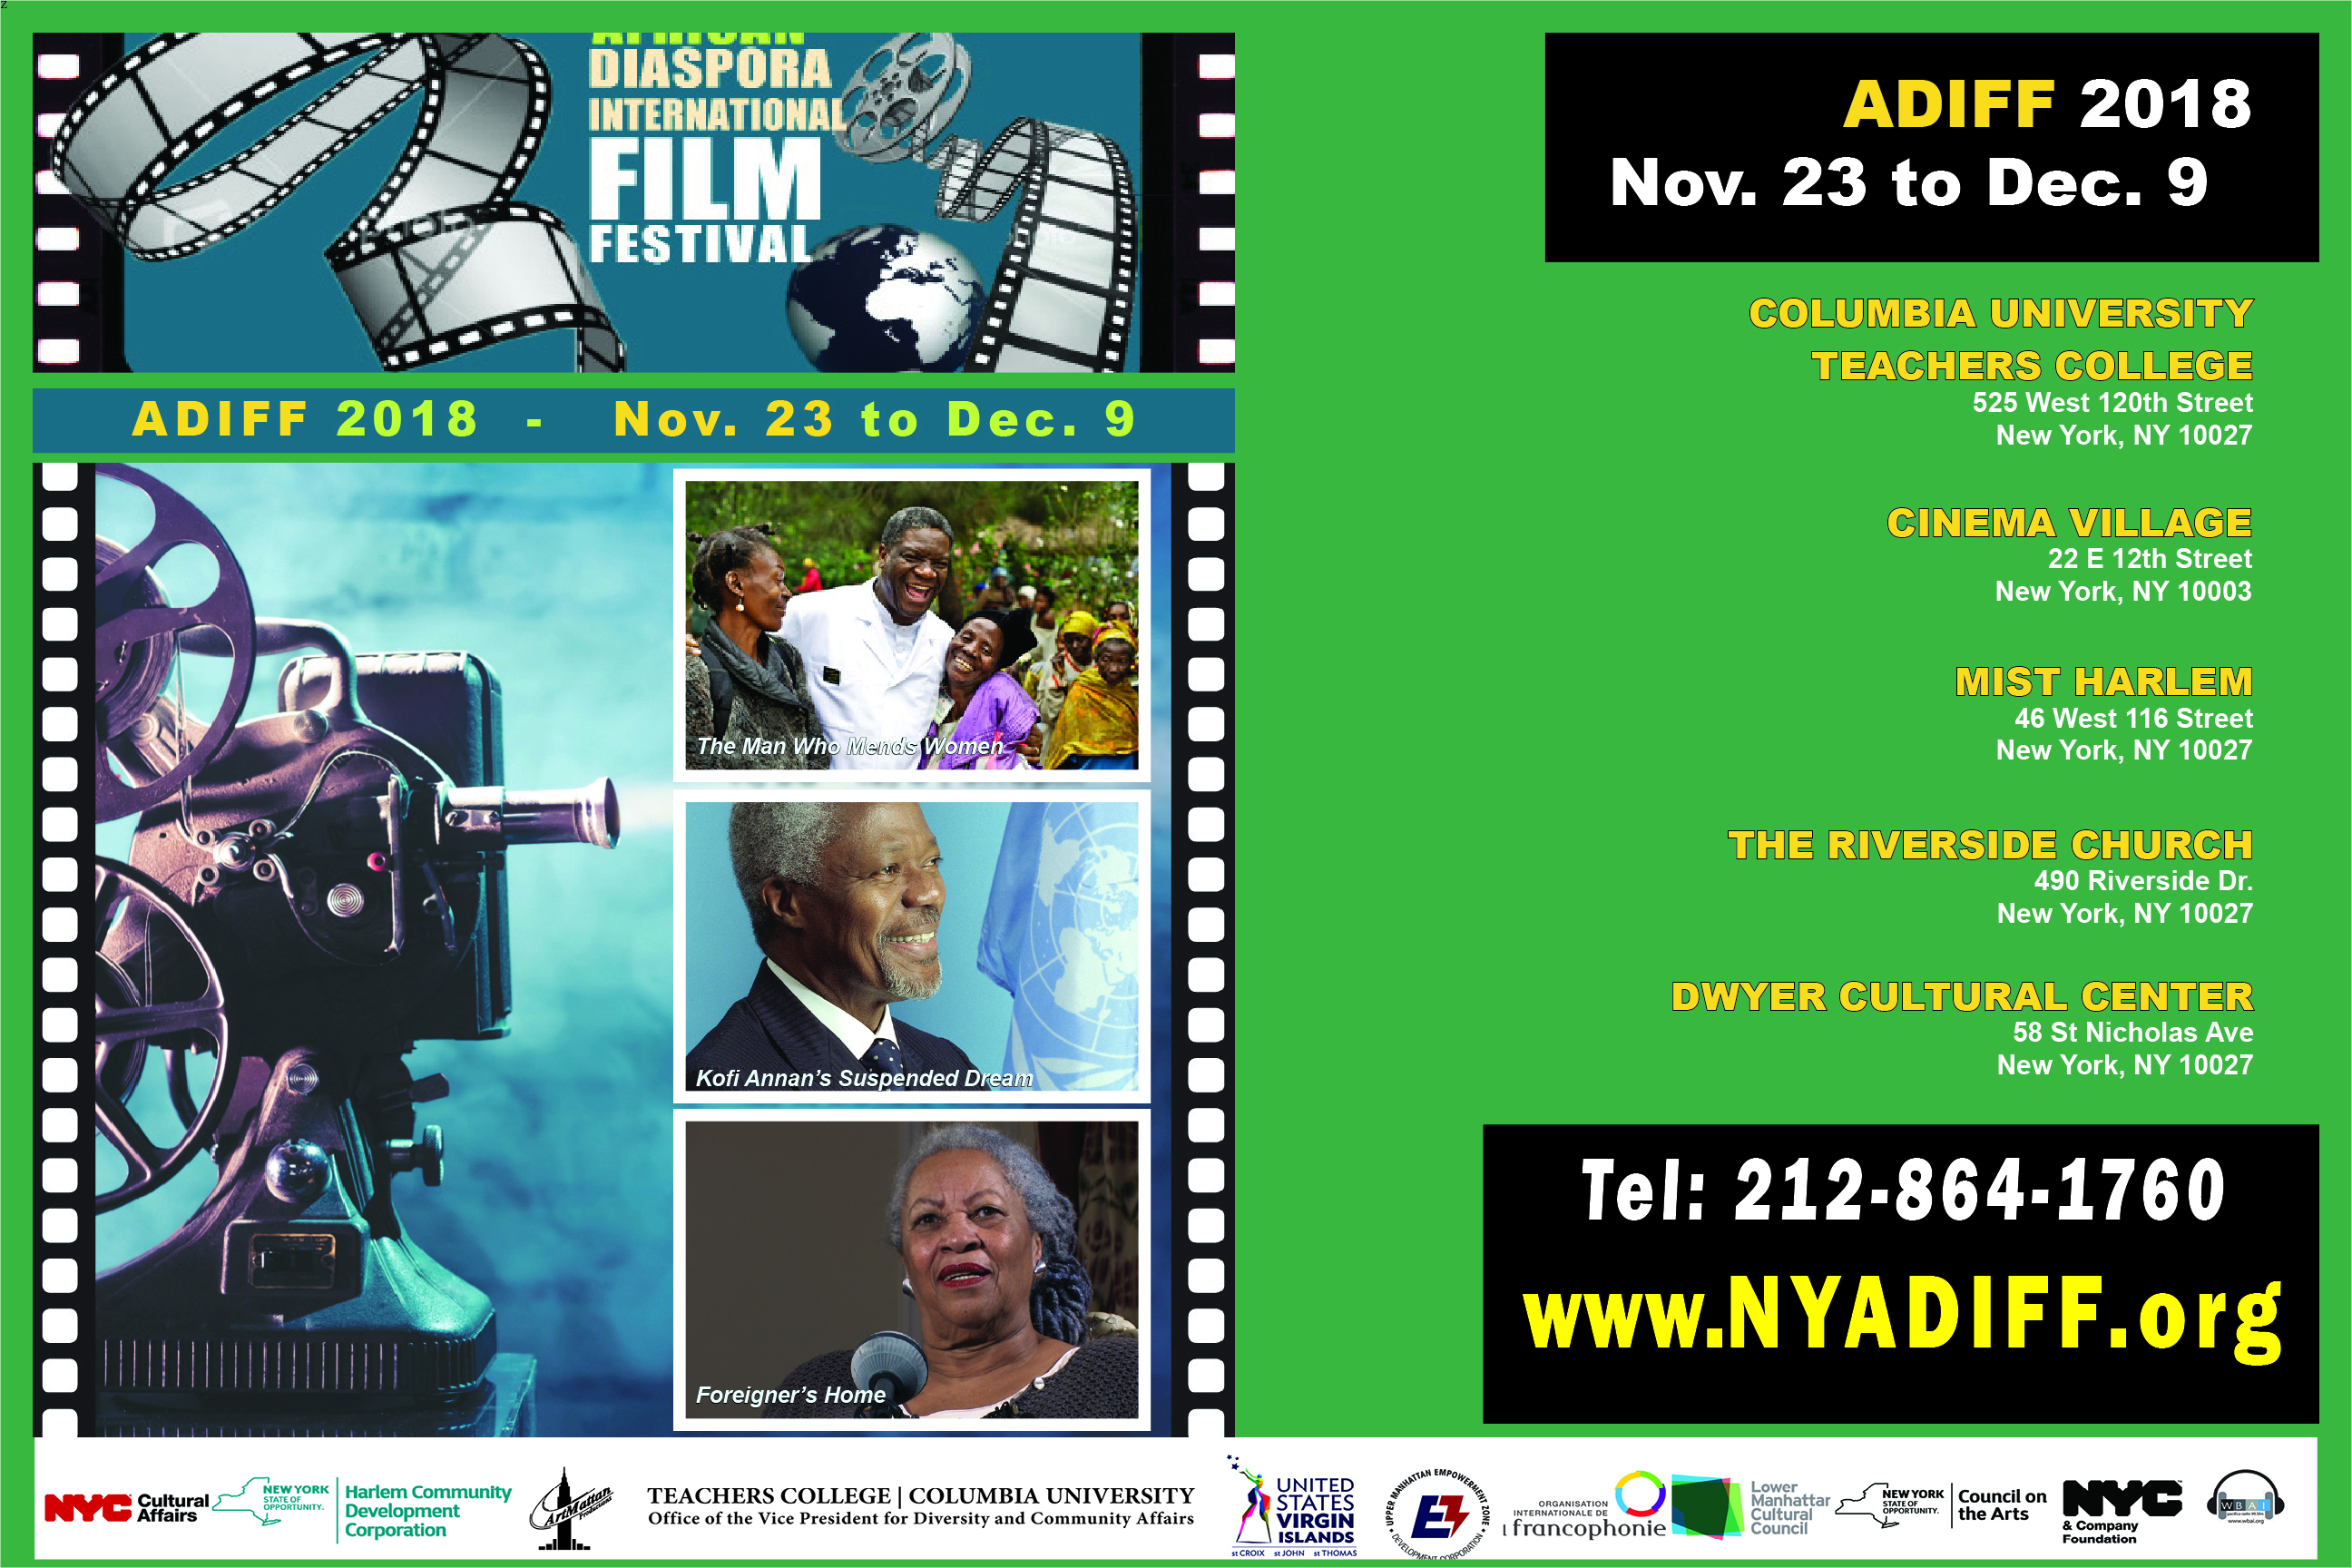 The poster for the ADIFF 2018, the African Diaspora International Film Festival, which goes from Nov. 23 through Dec. 9.